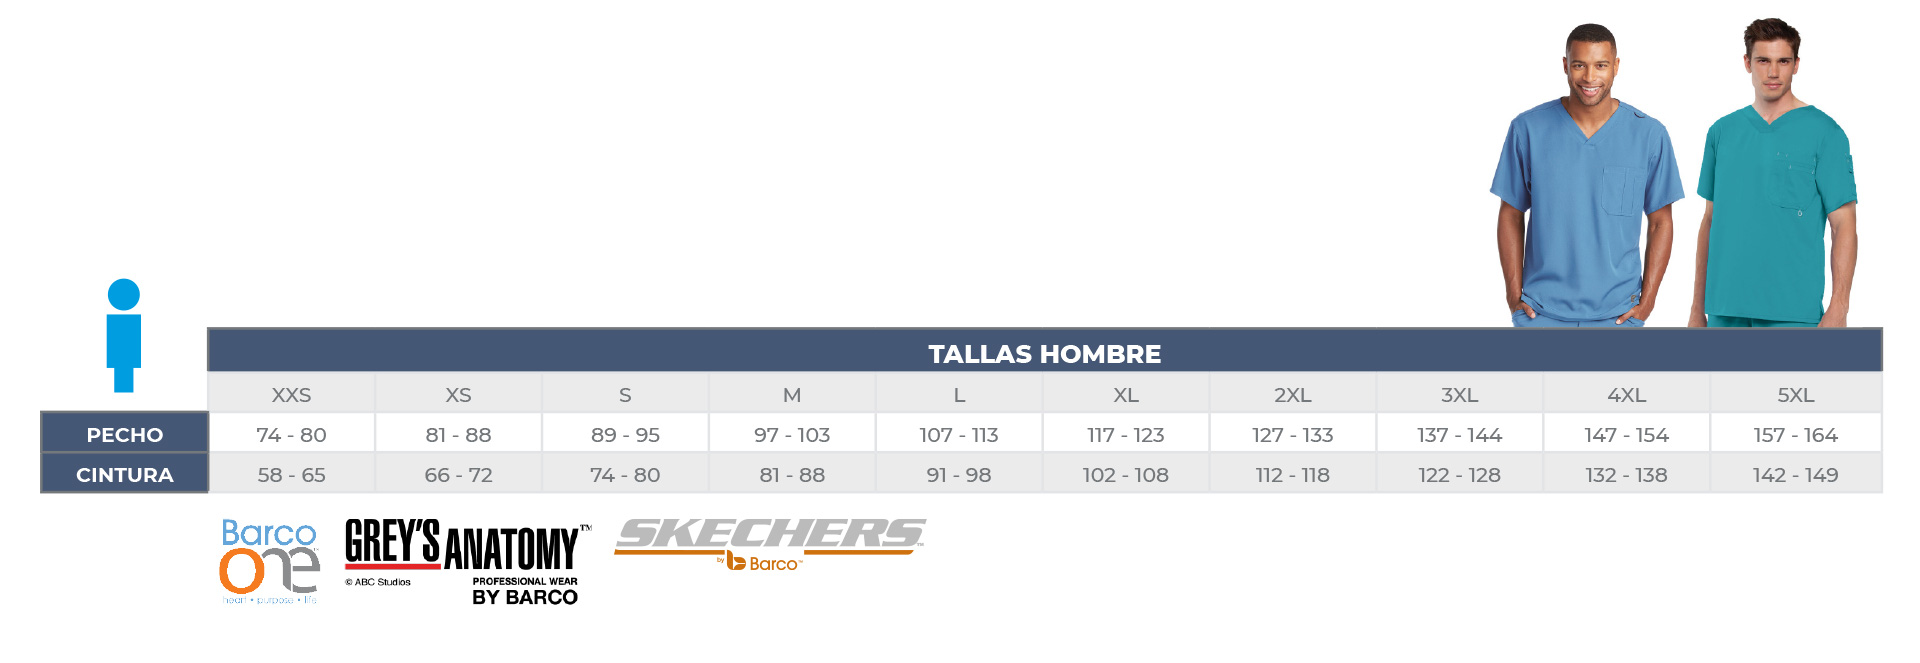 Tabla de tallas uniformes (9)